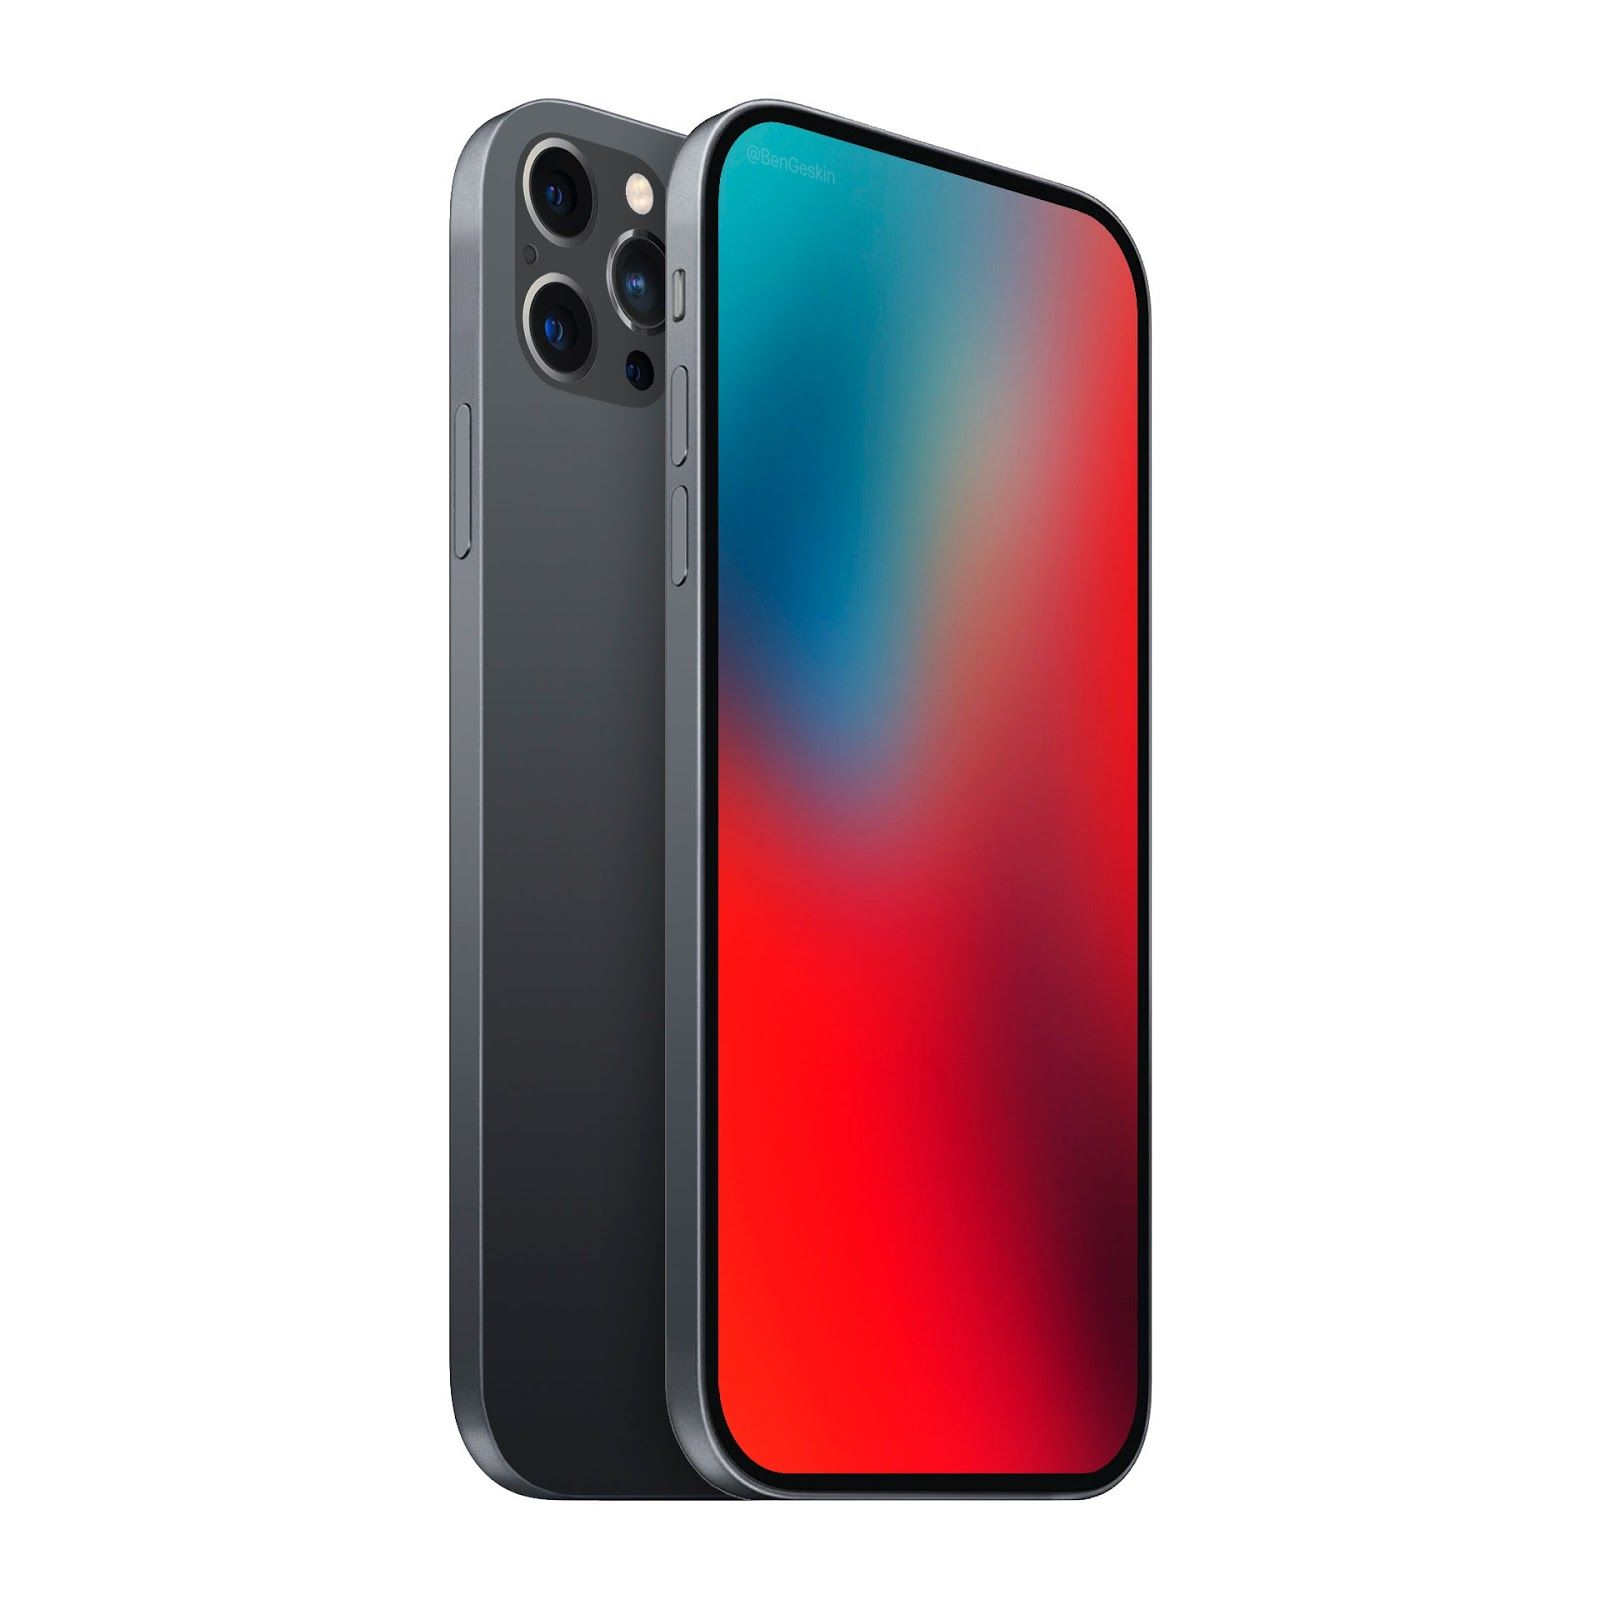 New Iphone Concept Released 12 Pro Said To Feature 6gb Ram Of Ram Iphone Wallpaper Hd Original Iphone Samsung Wallpaper